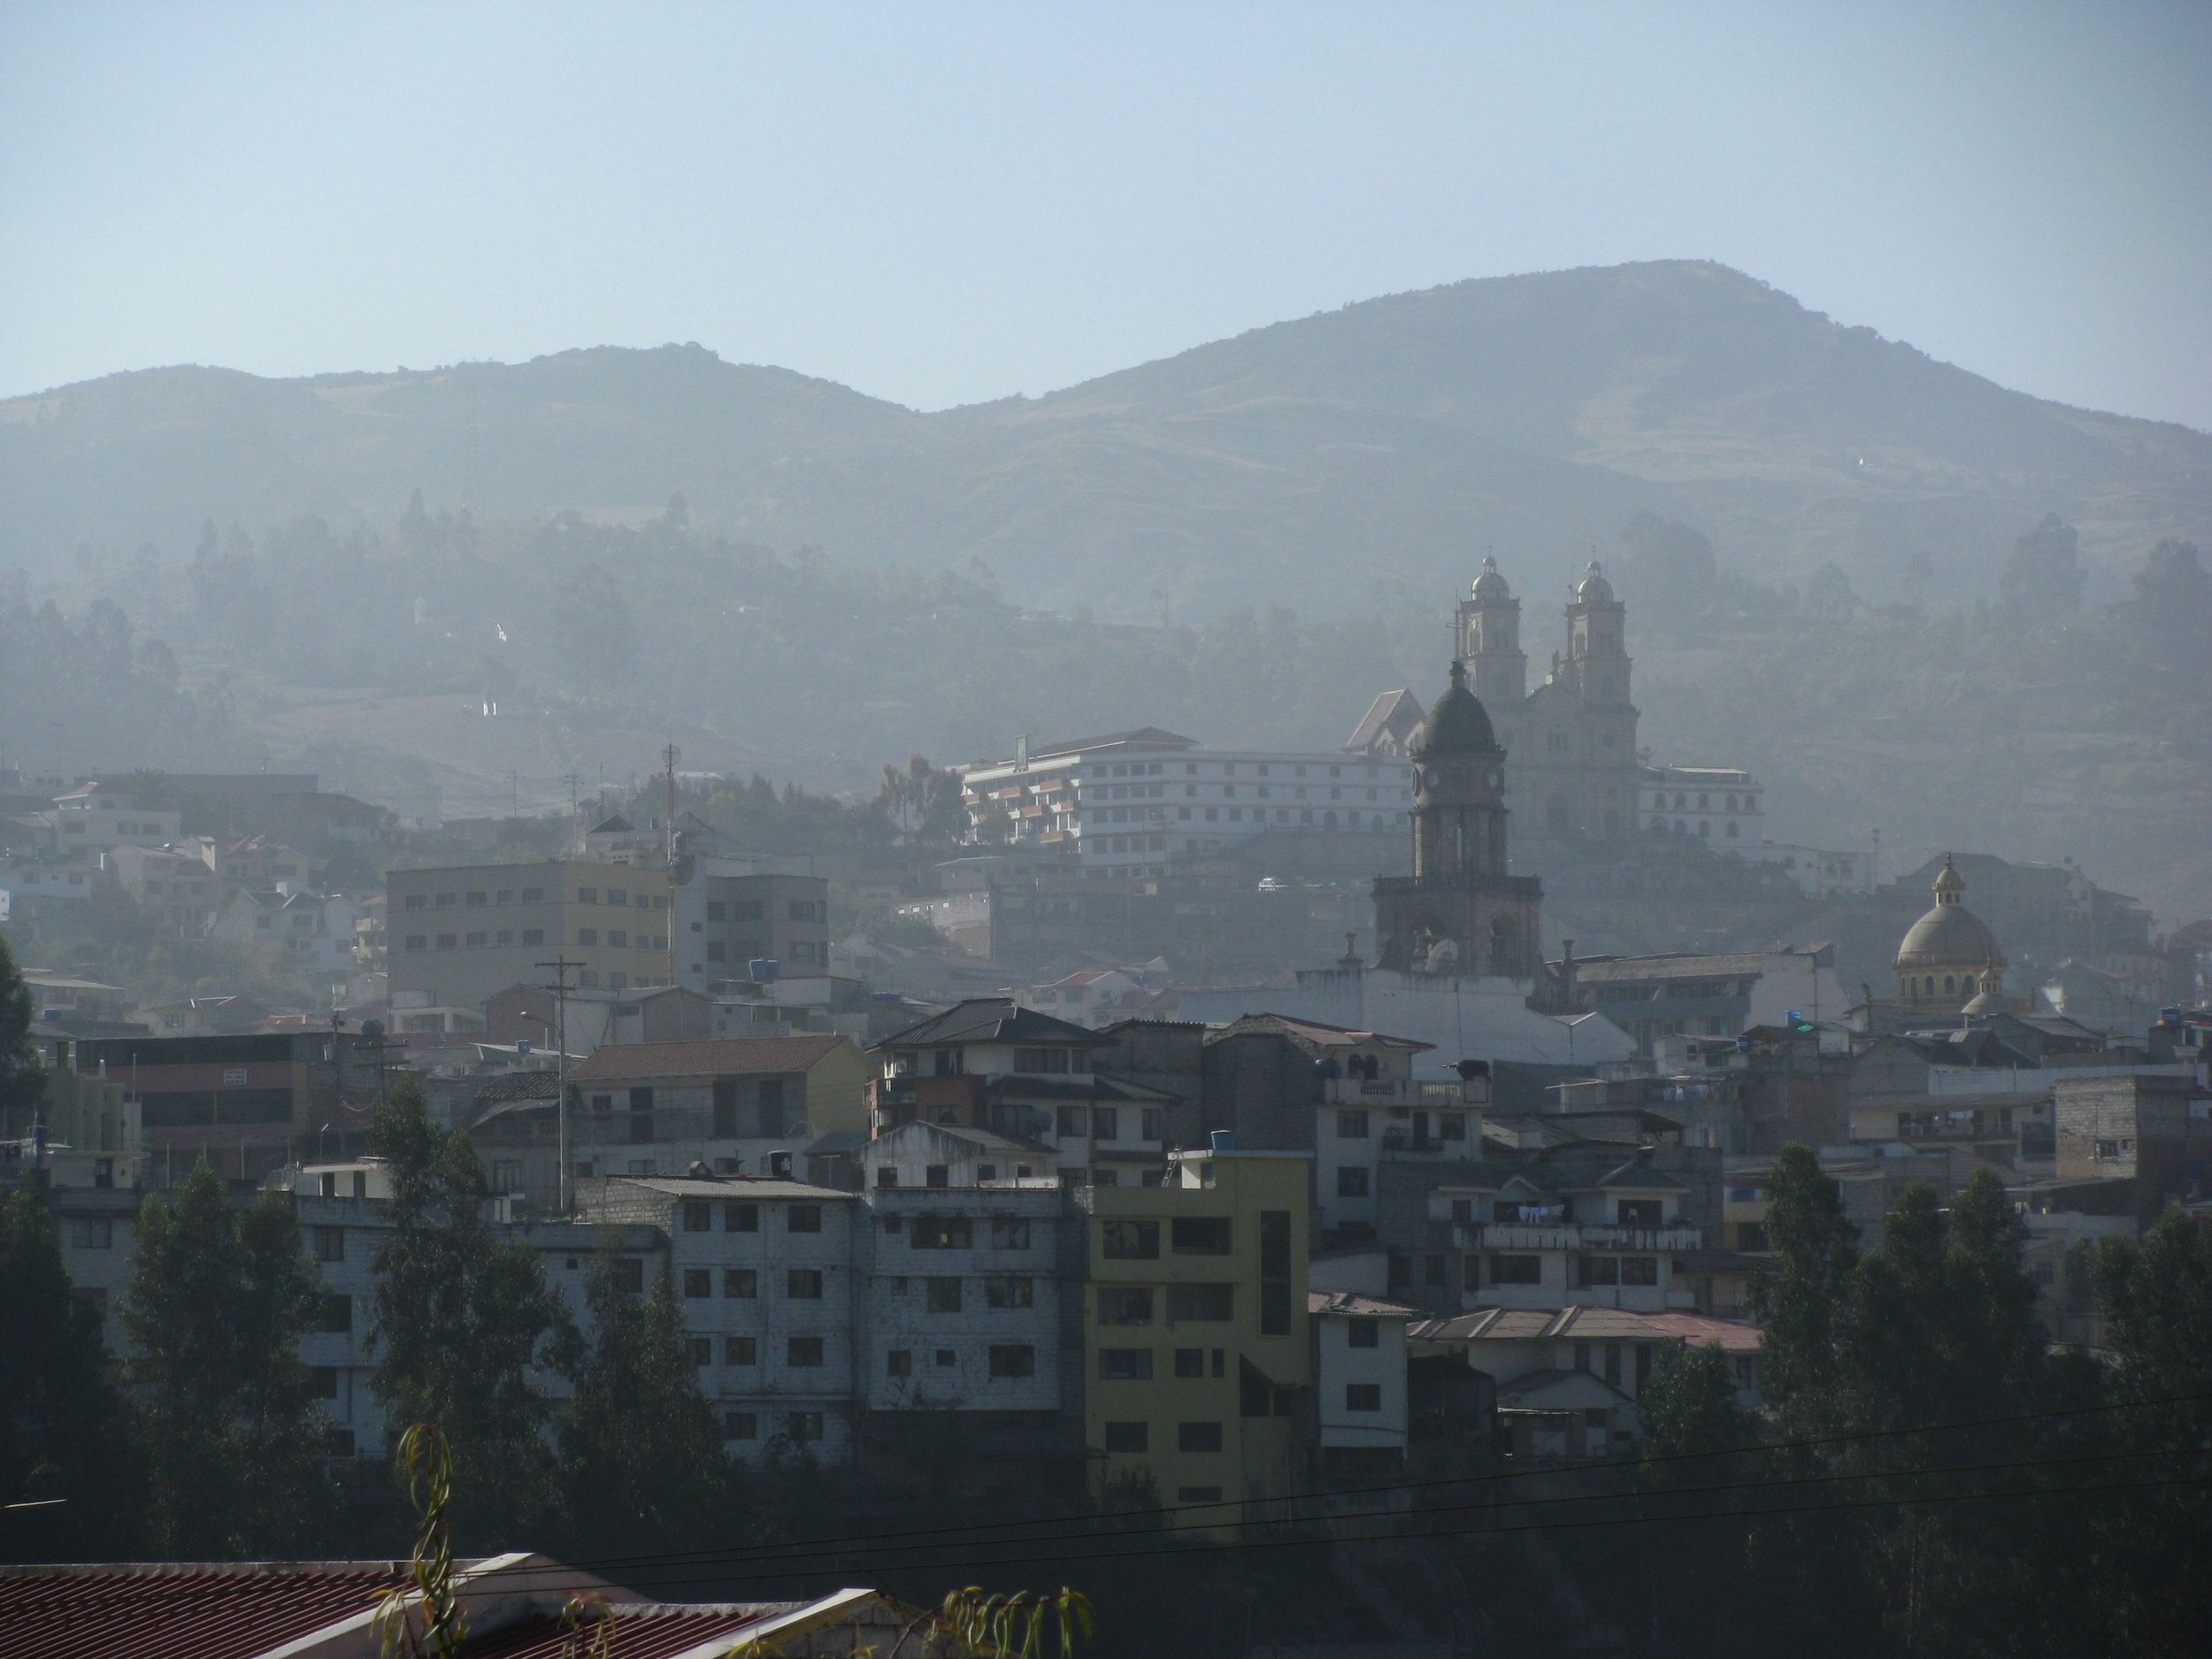 Azoges Ecuador  a typical small city in the mountains